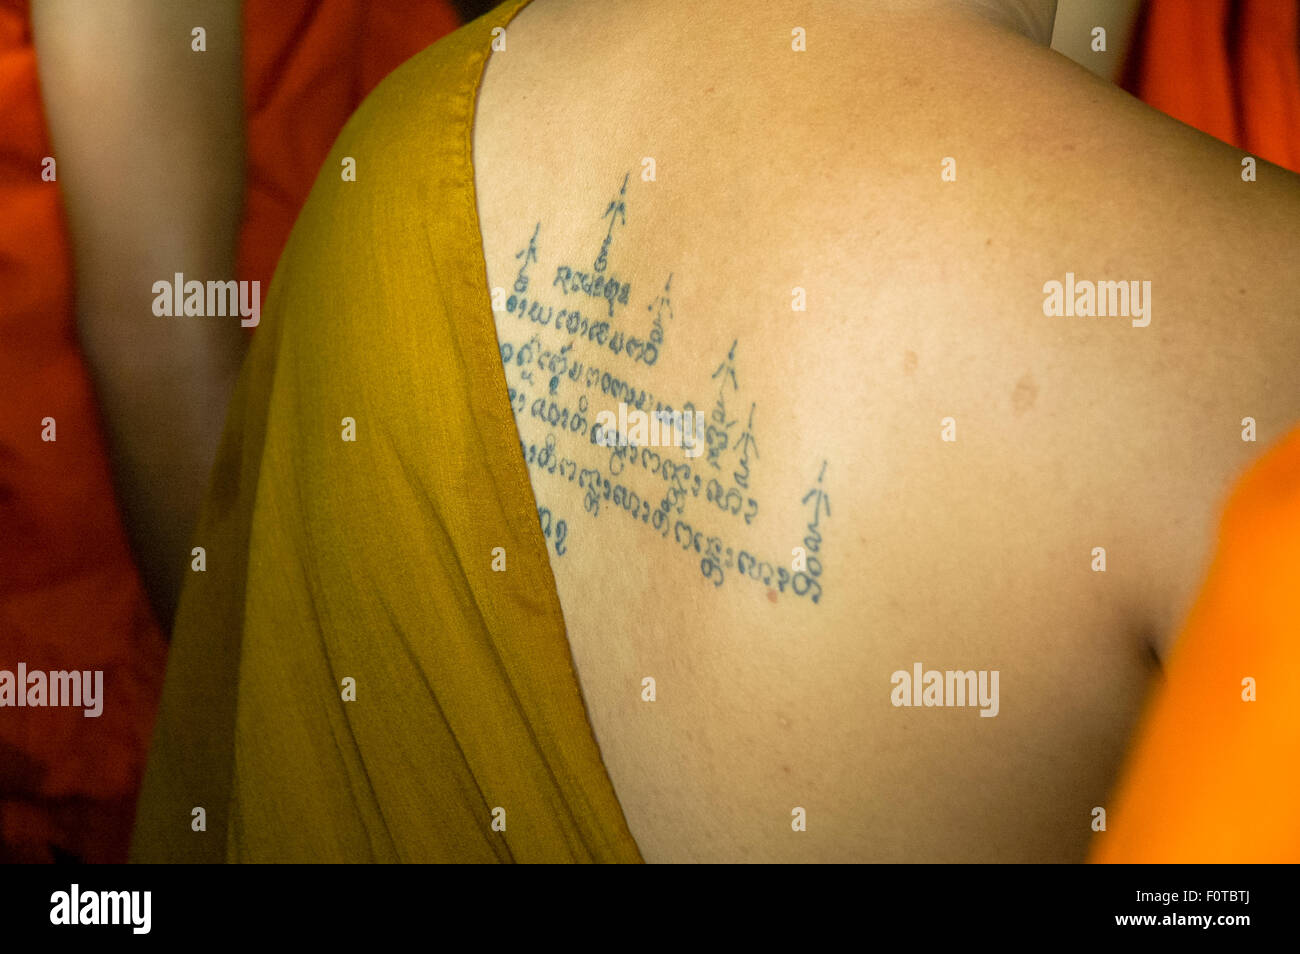 ancient tattoos stock photos ancient tattoos stock images alamy. Black Bedroom Furniture Sets. Home Design Ideas